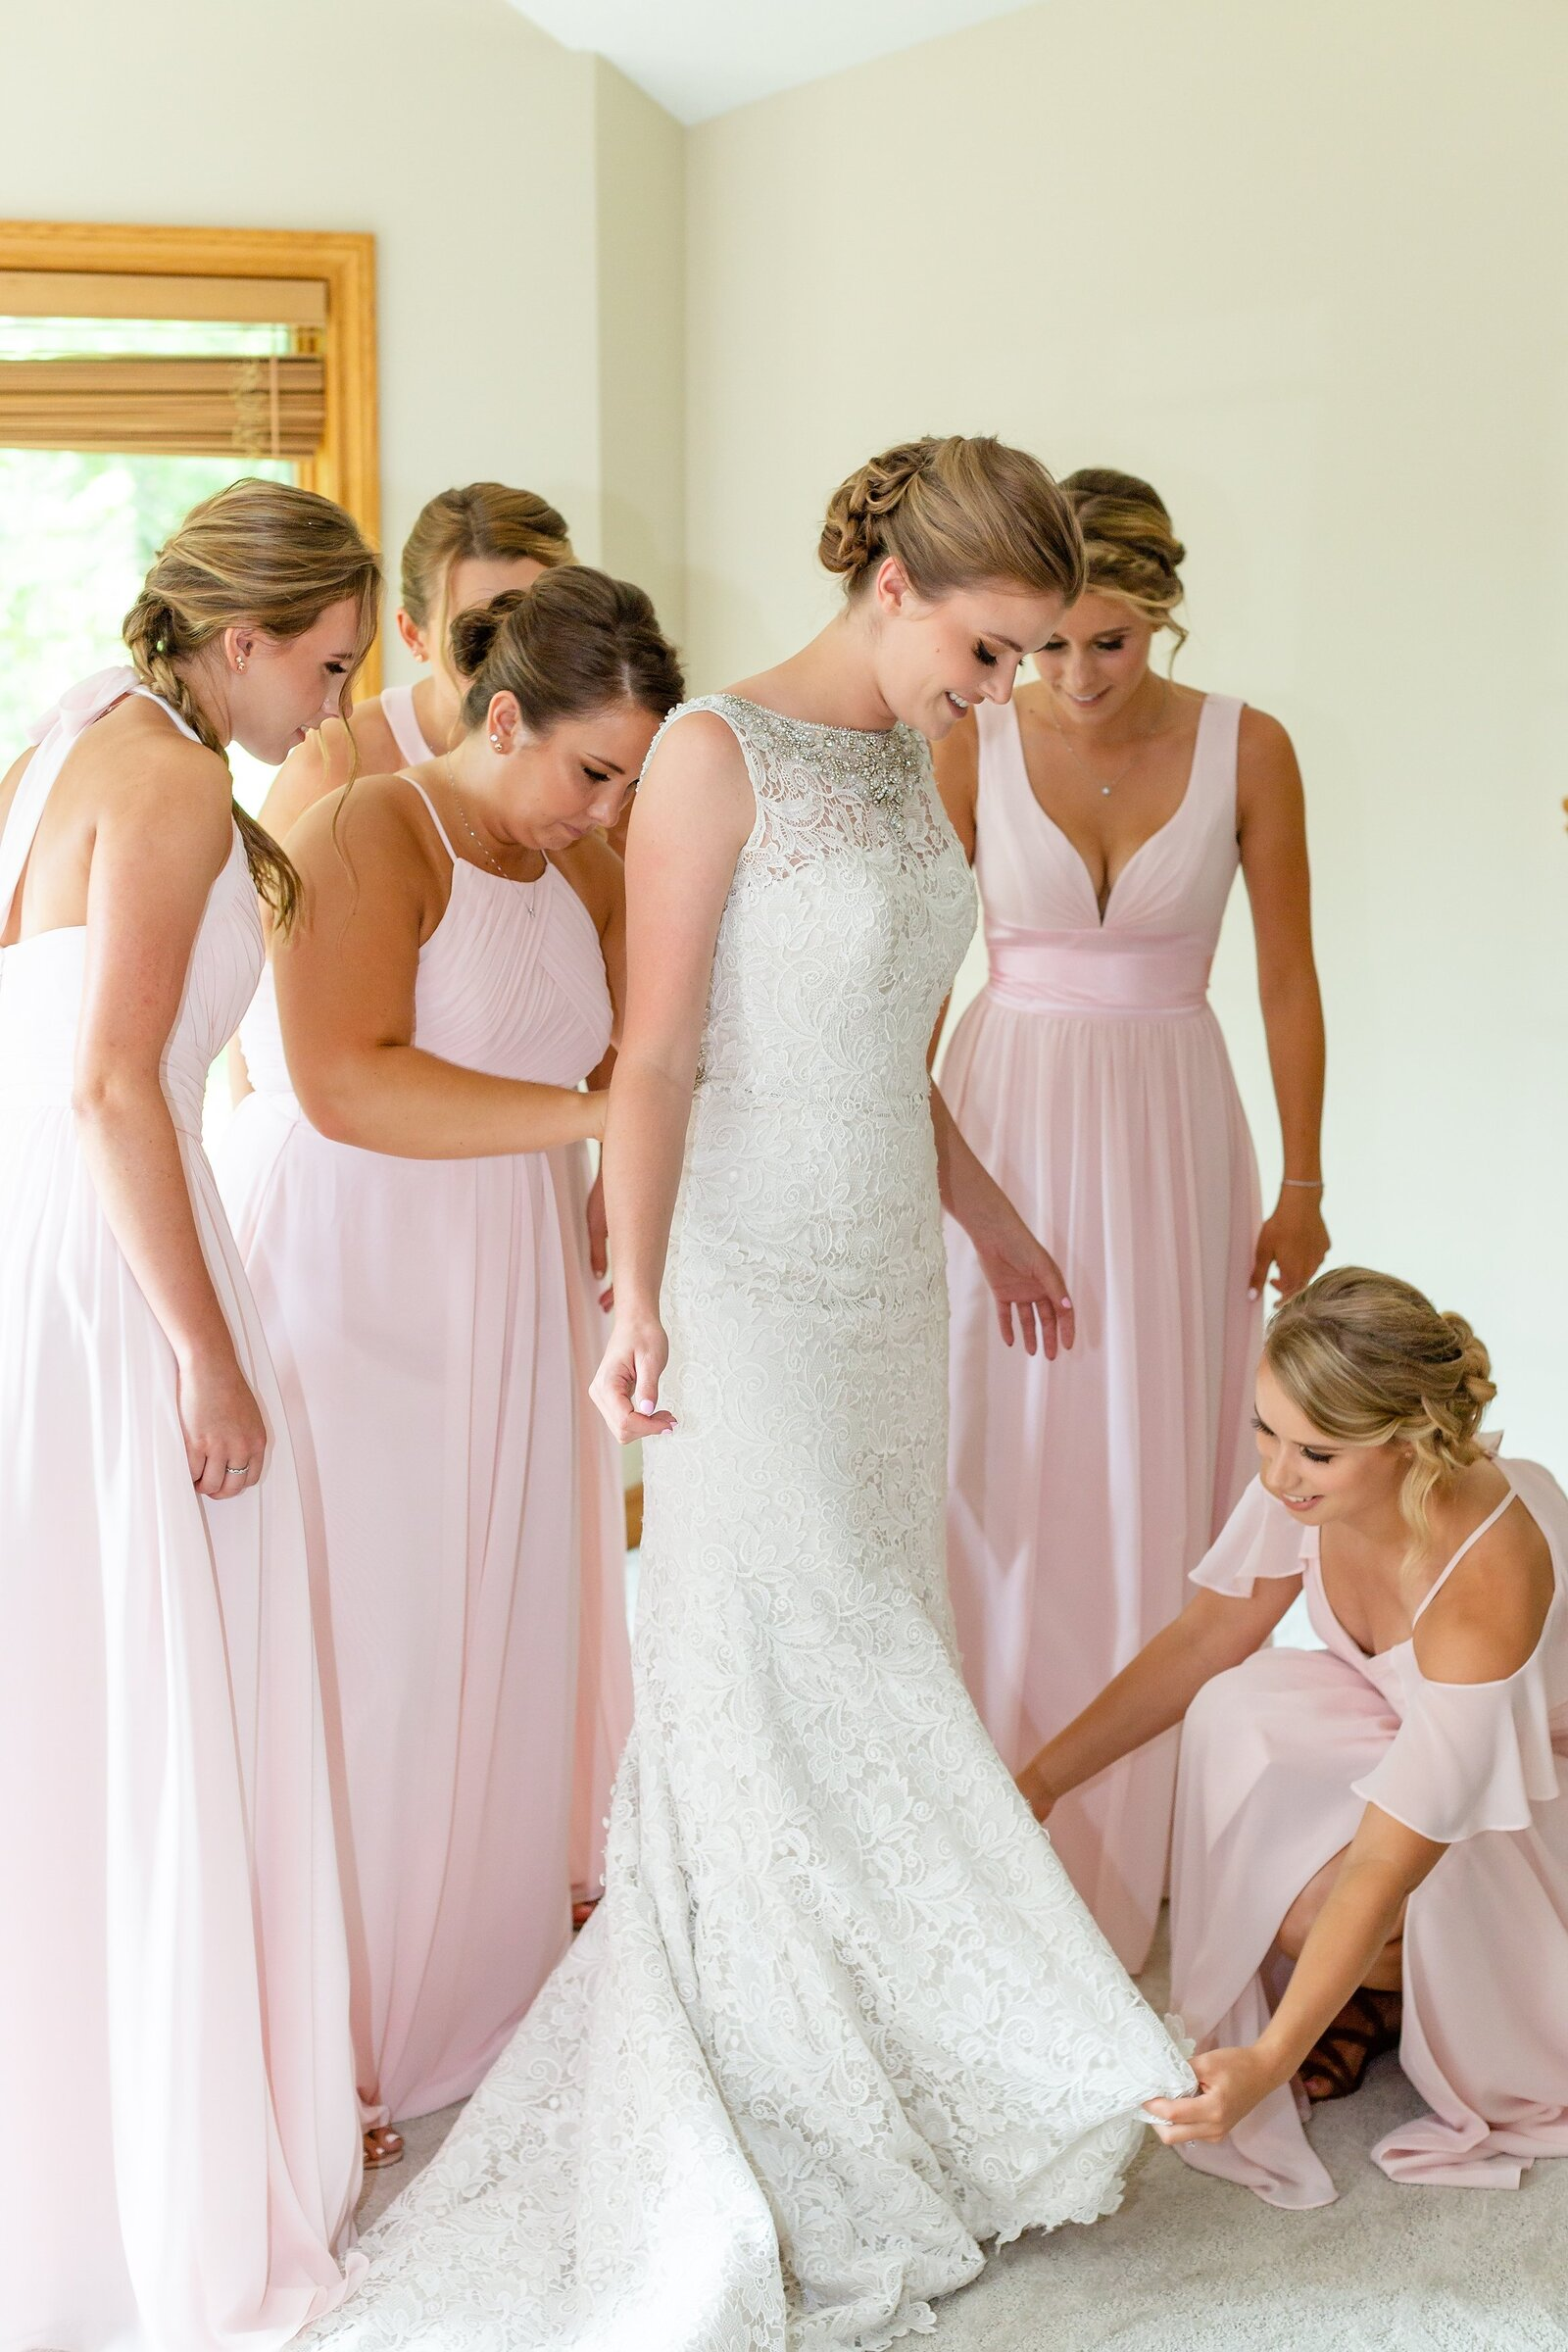 Bridesmaids-helping-the-bride-look-her-best-on-her-wedding-day